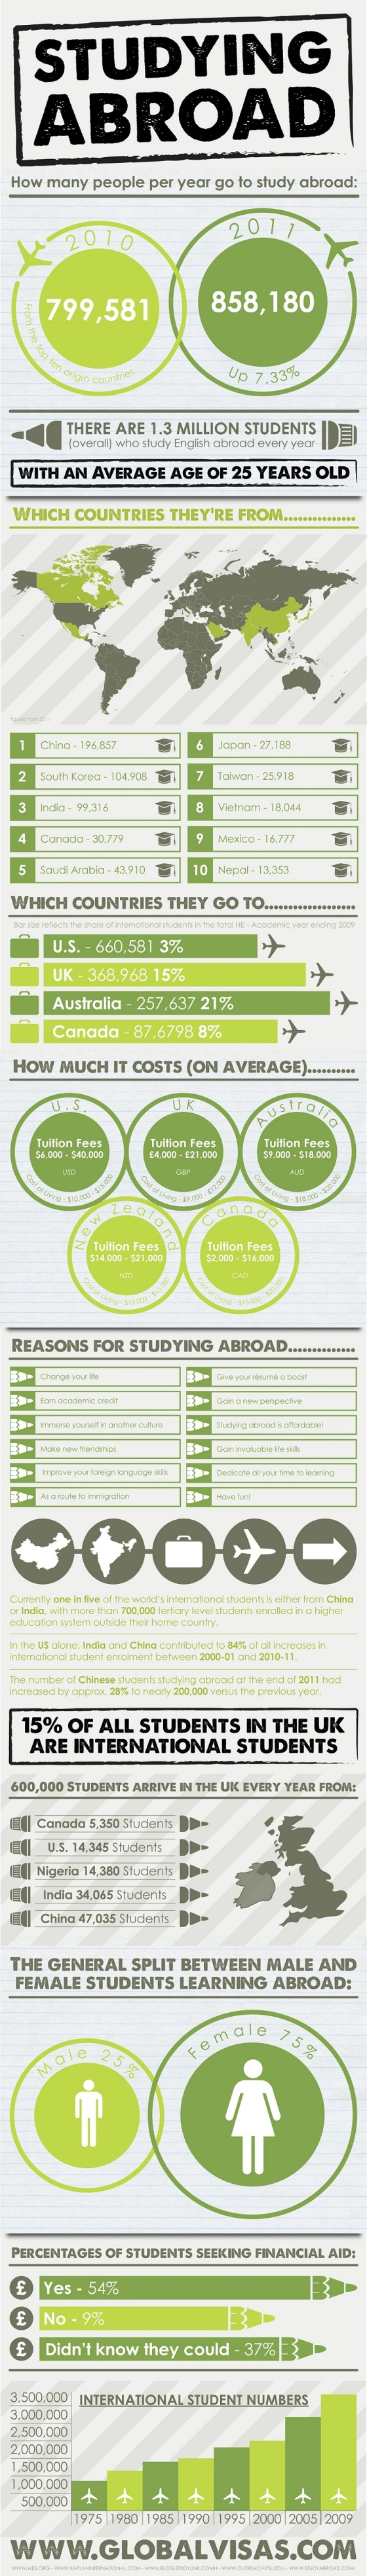 Studying Abroad Infographic: Where International Students Go, and Why